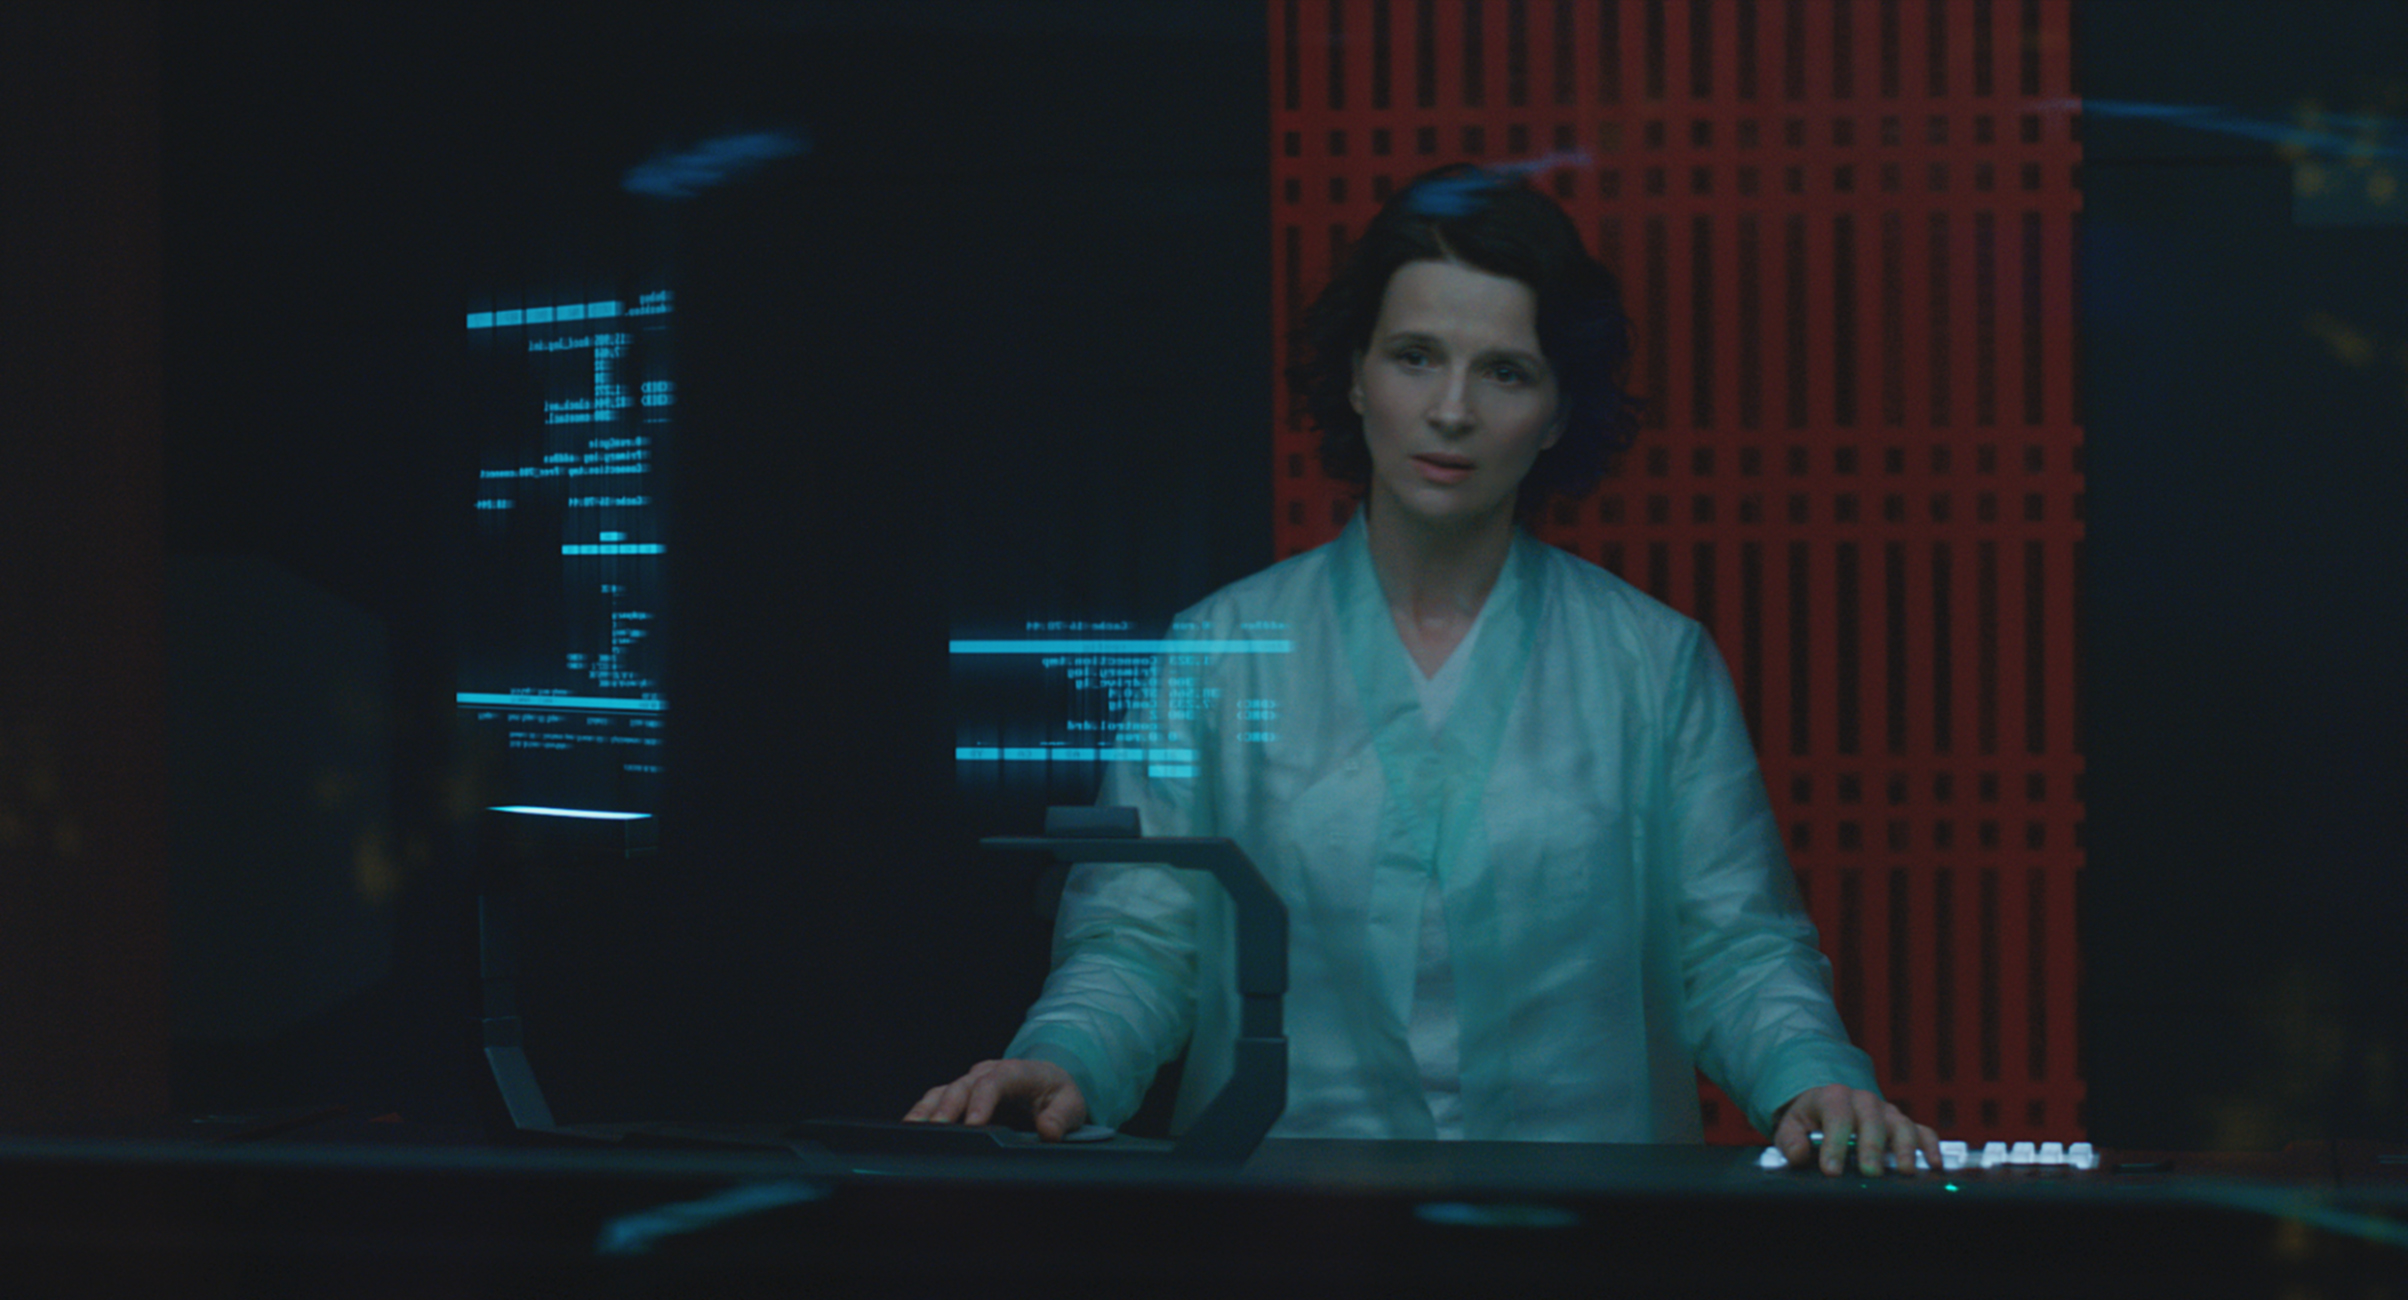 Juliette Binoche plays Dr. Ouelet in Ghost in the Shell from Paramount Pictures and DreamWorks Pictures in theaters March 31, 2017.